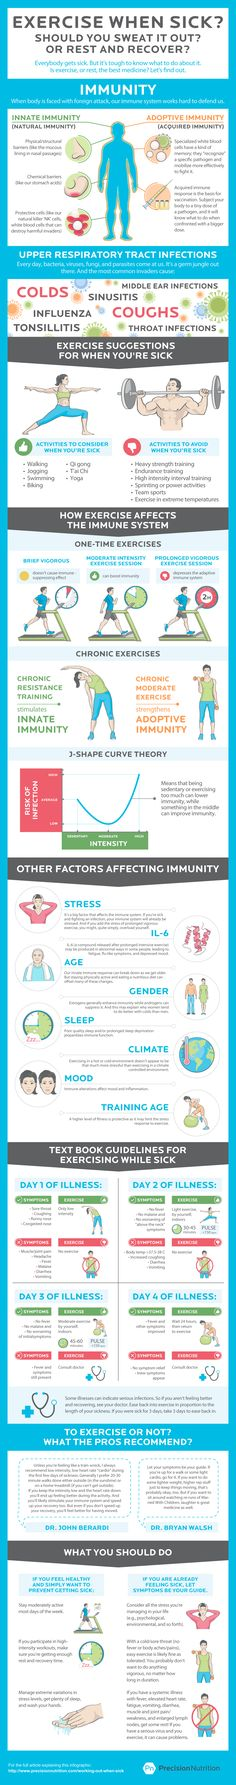 Rules for exercising when sick: [A PRINTABLE GUIDE]: http://www.precisionnutrition.com/working-out-when-sick-infographic